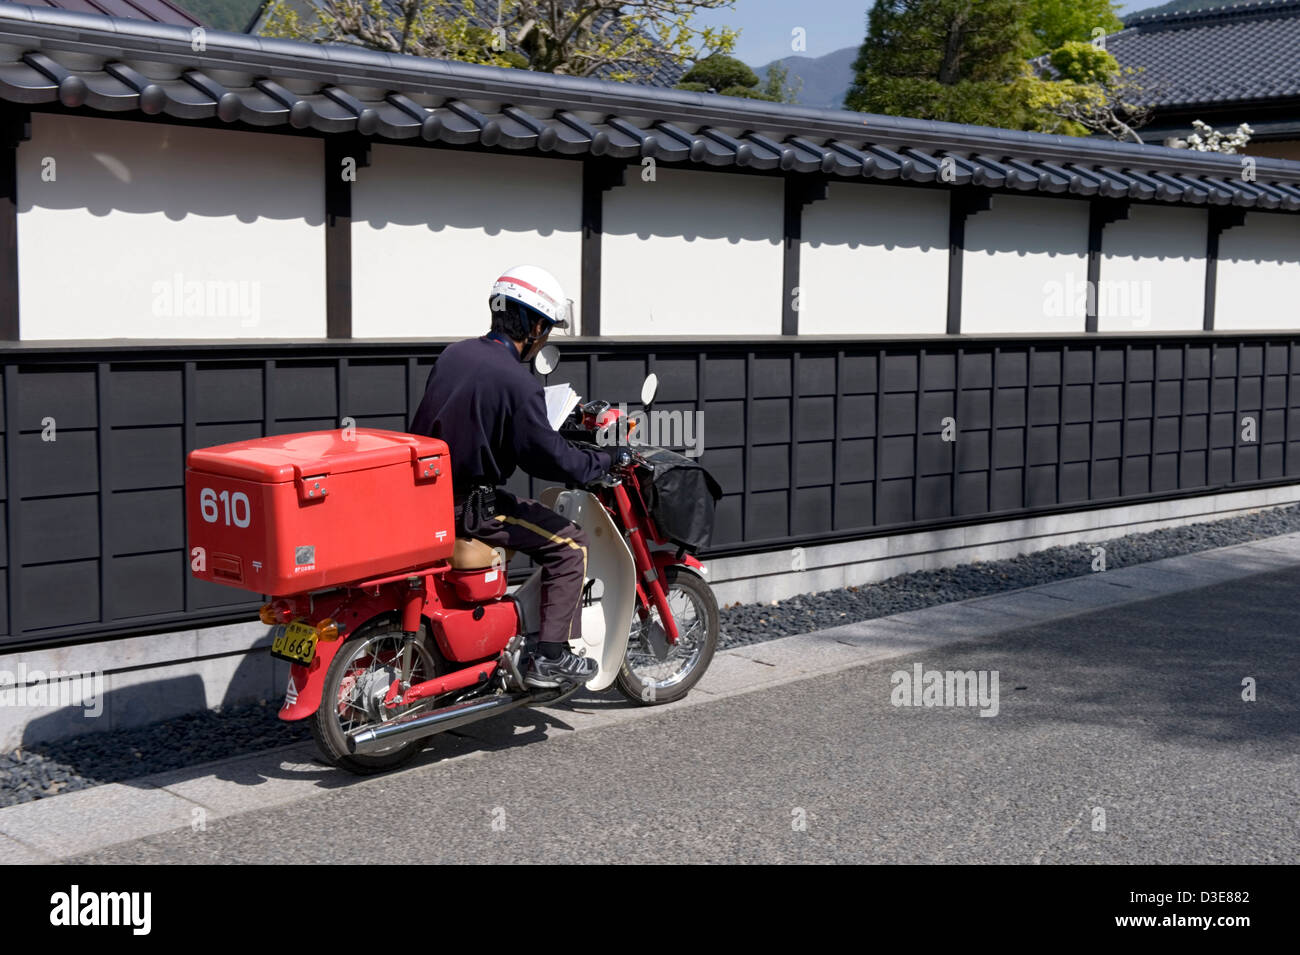 A typical red motor scooter used by the Japanese Postal System to deliver mail all around the country. - Stock Image